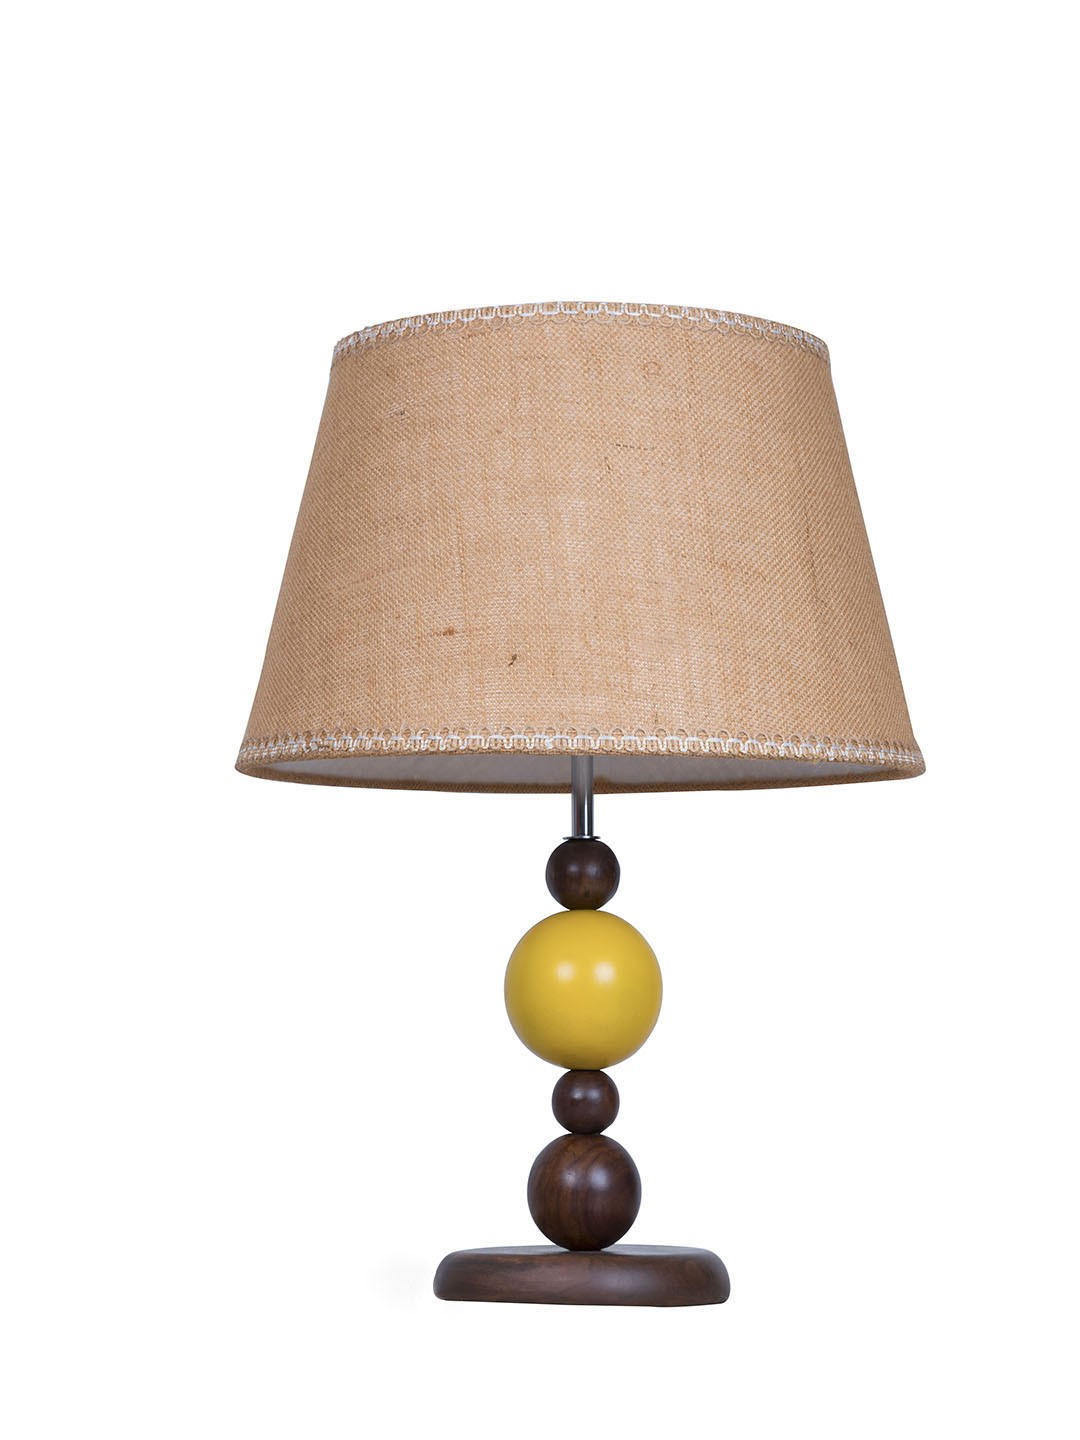 Yellow Ball Wood Table Lamp with Jute Lace Shade